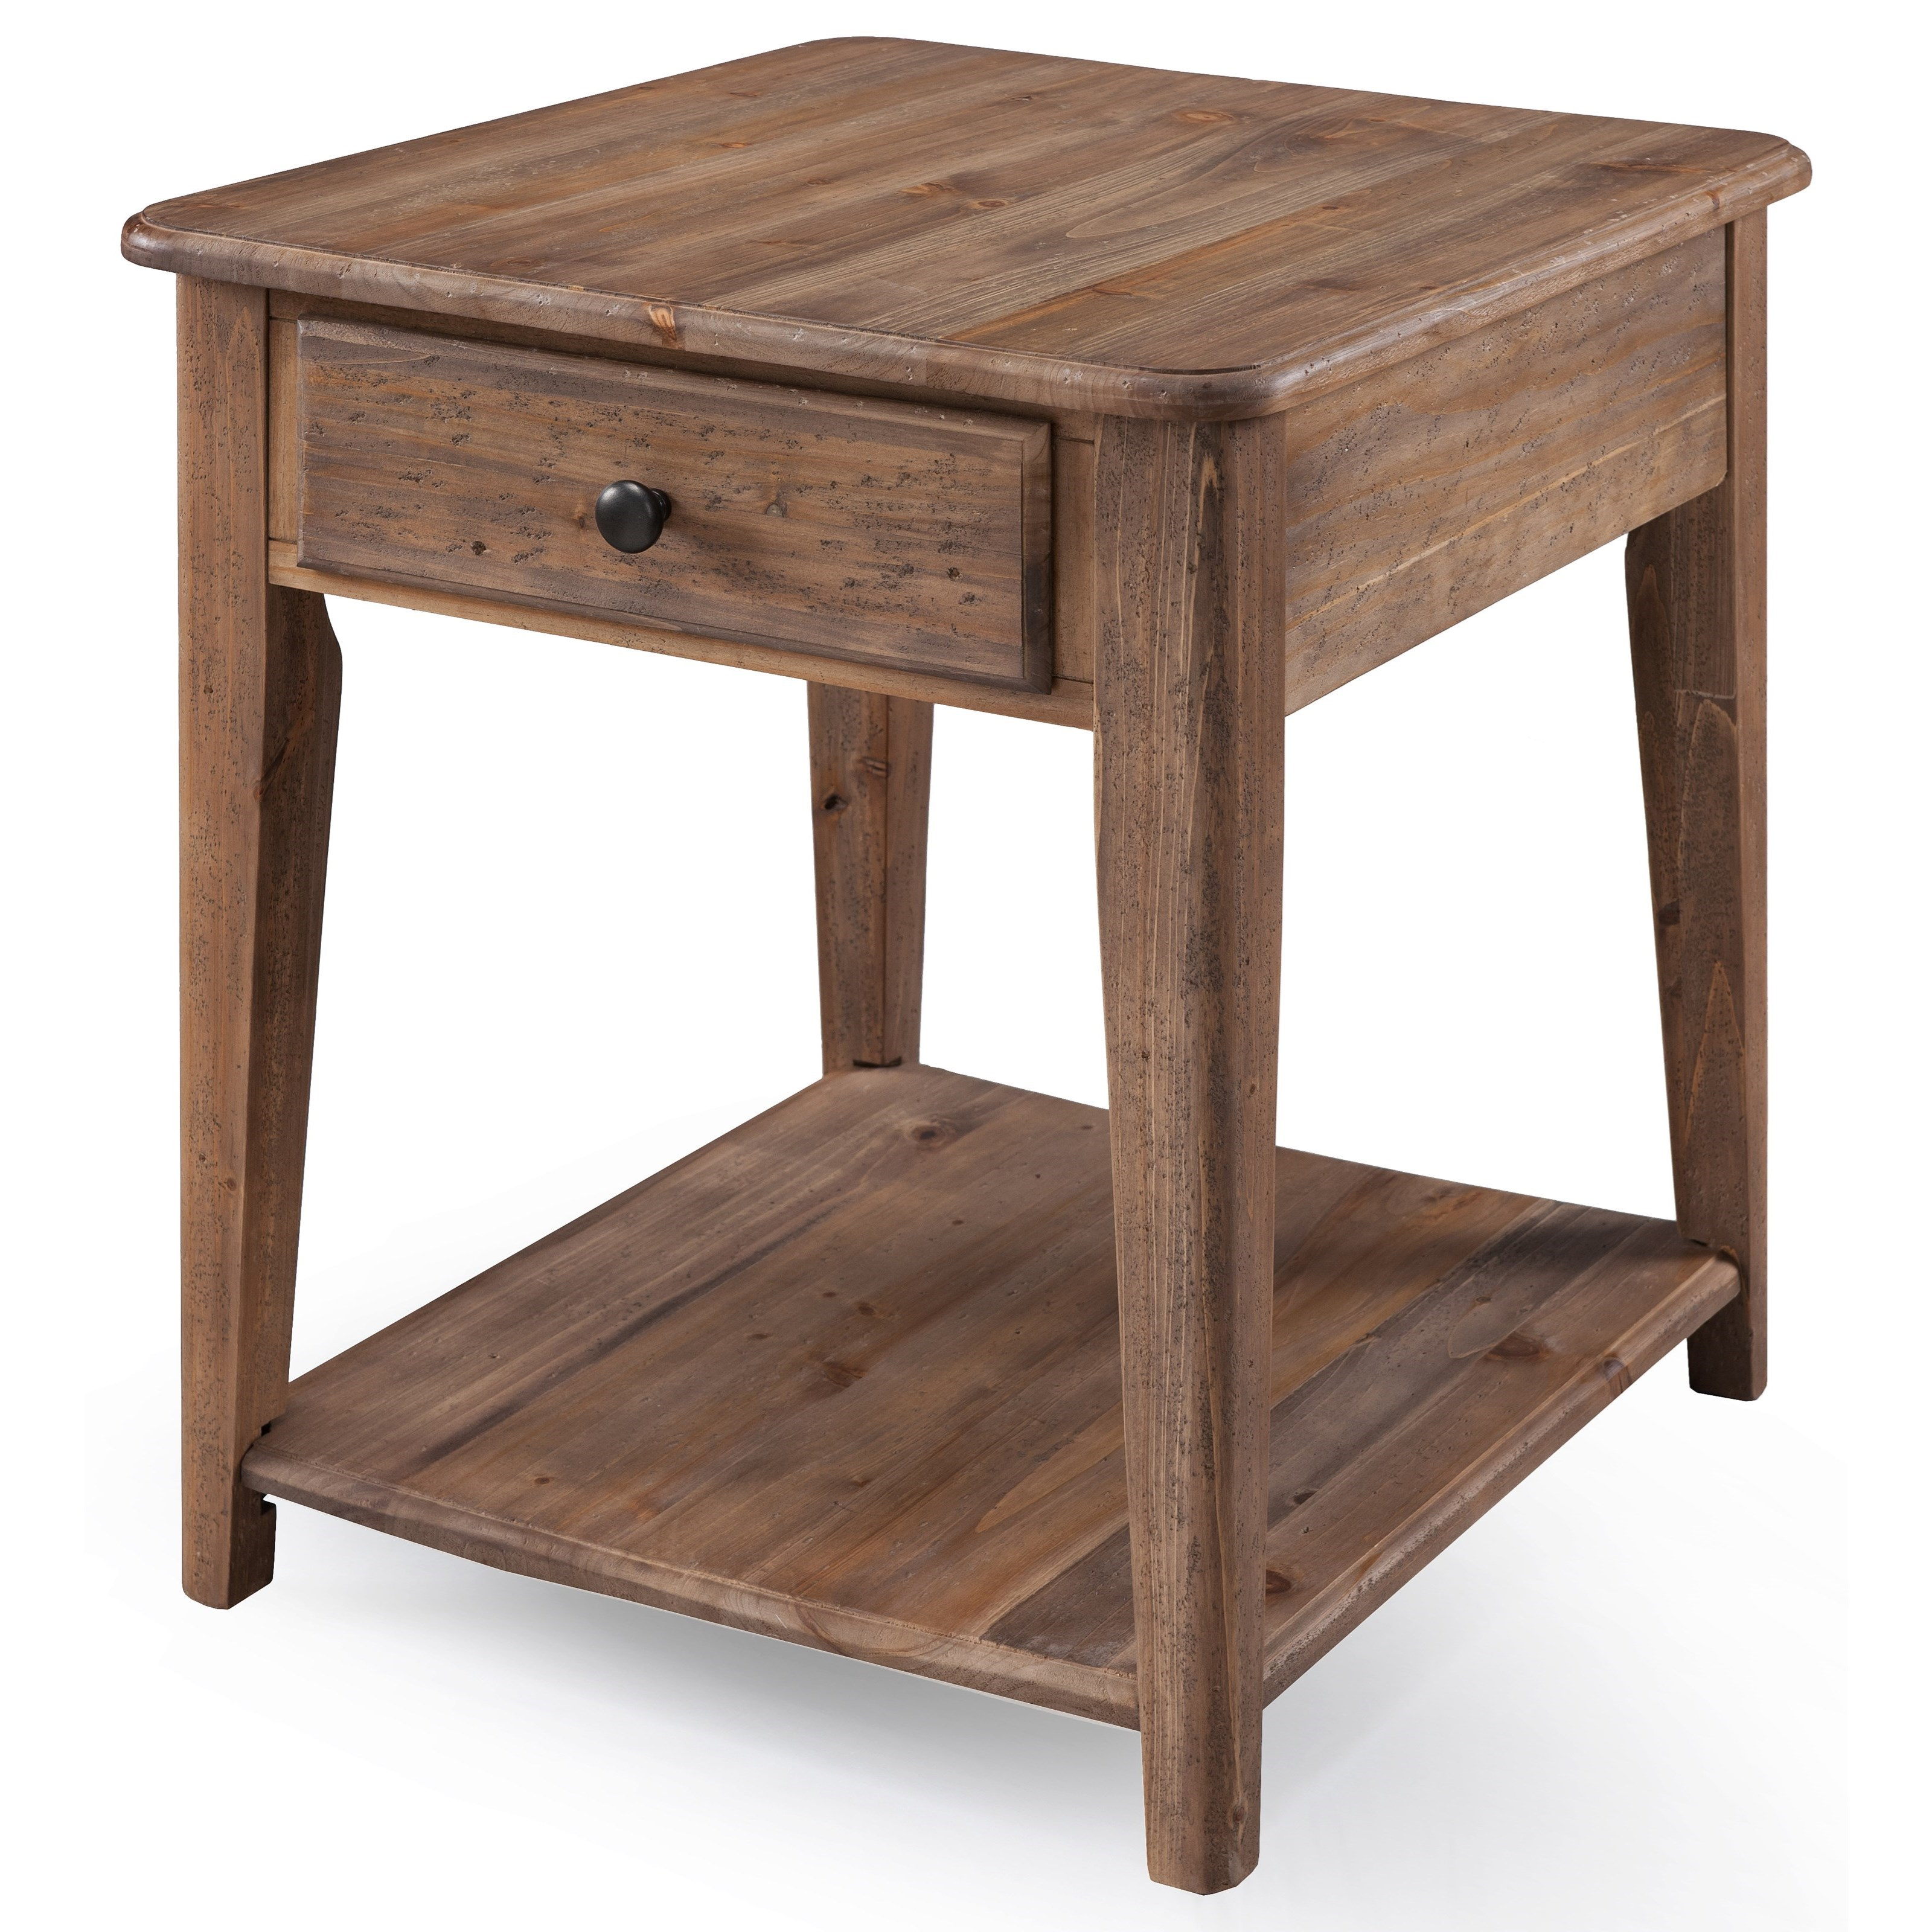 Baytowne End Table by Magnussen Home at HomeWorld Furniture